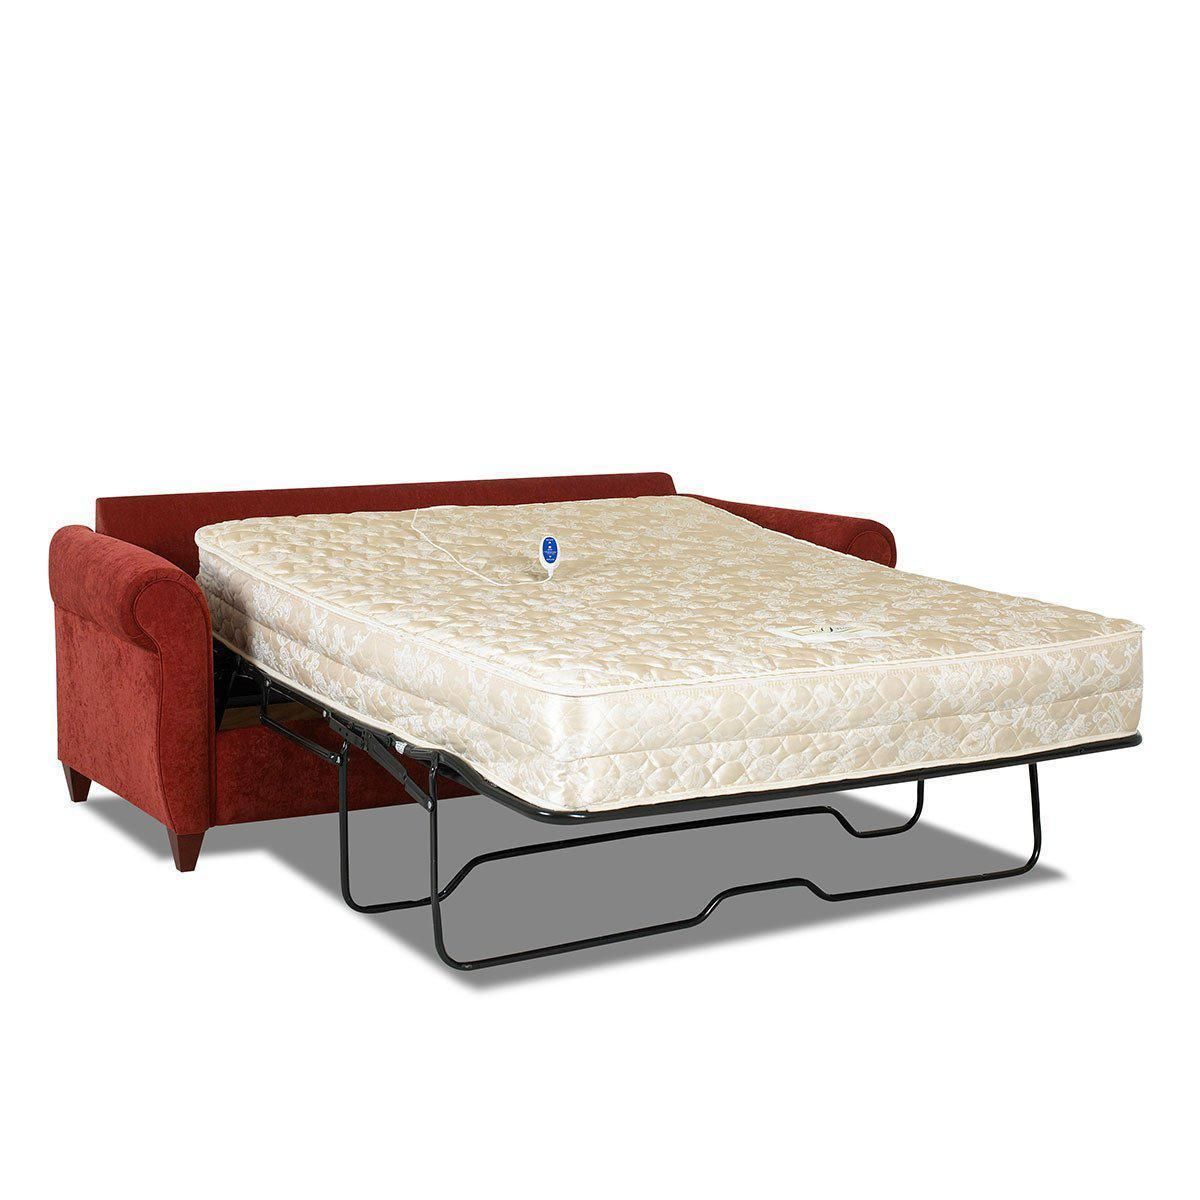 Jennipedic Aircoil Upgrade Mattress